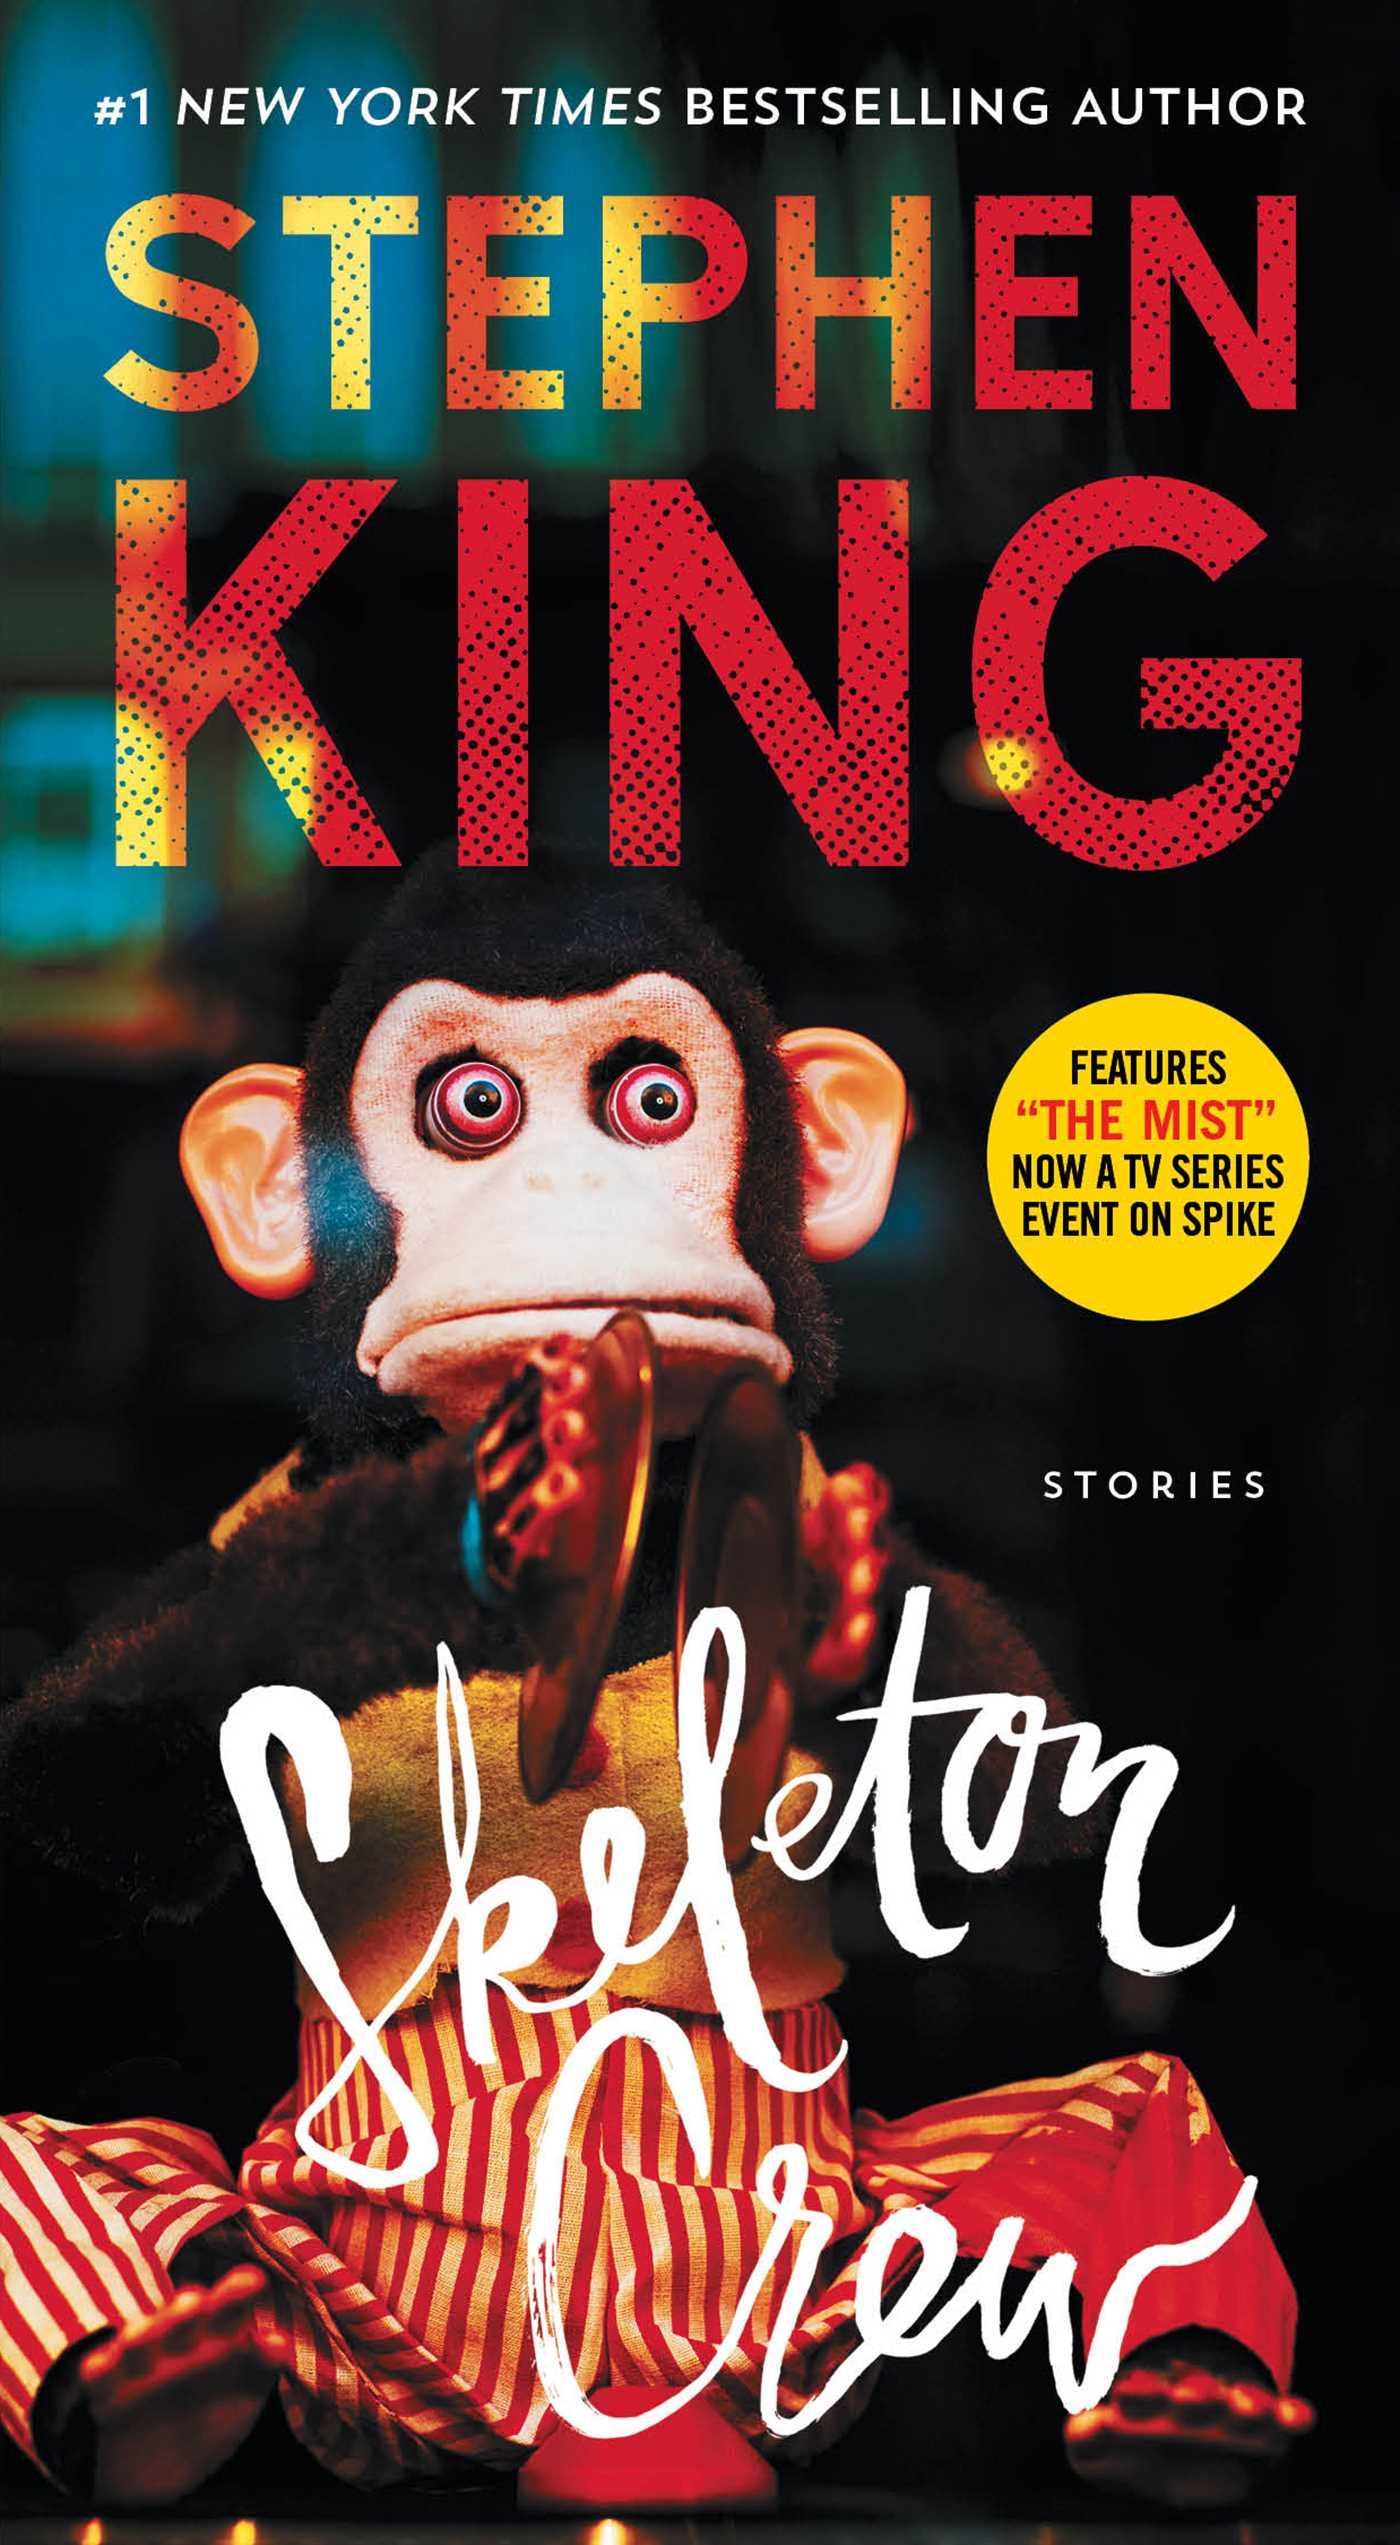 an analysis of the skeleton crew a story by stephen king Skeleton crew - the reach & notes summary & analysis stephen king this study guide consists of approximately 46 pages of chapter summaries, quotes, character analysis, themes, and more - everything you need to sharpen your knowledge of skeleton crew.